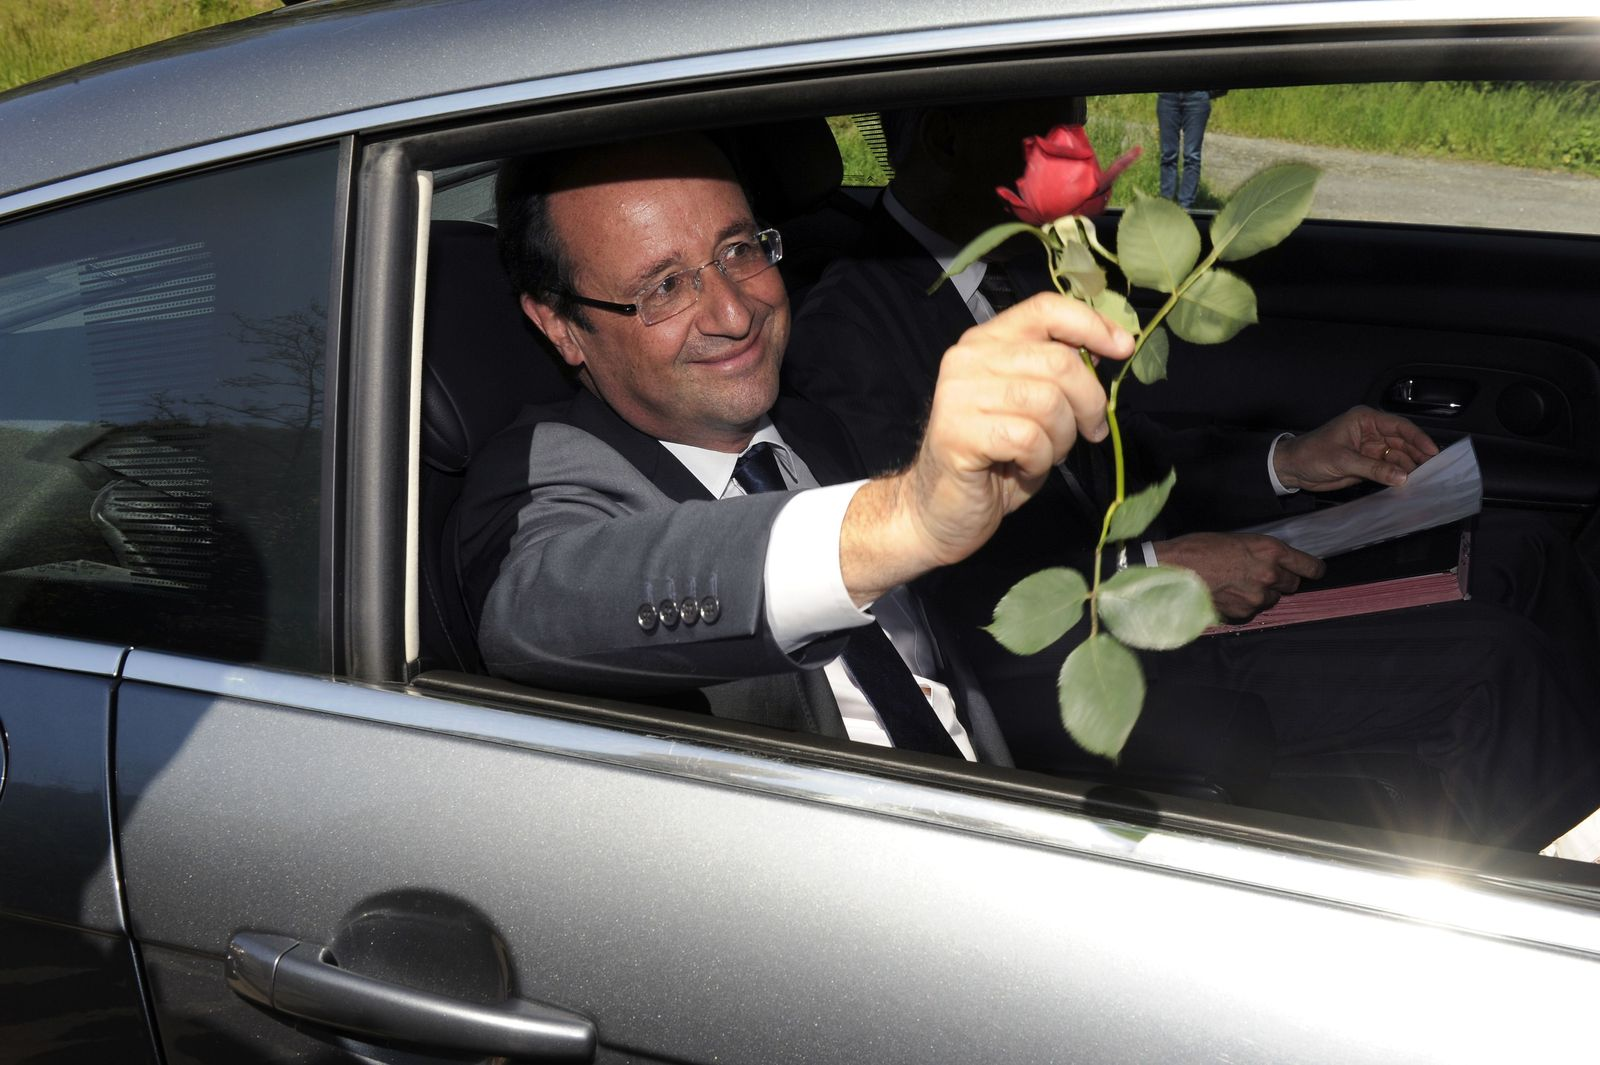 FRANCE-POLITICS-HOLLANDE-TULLE